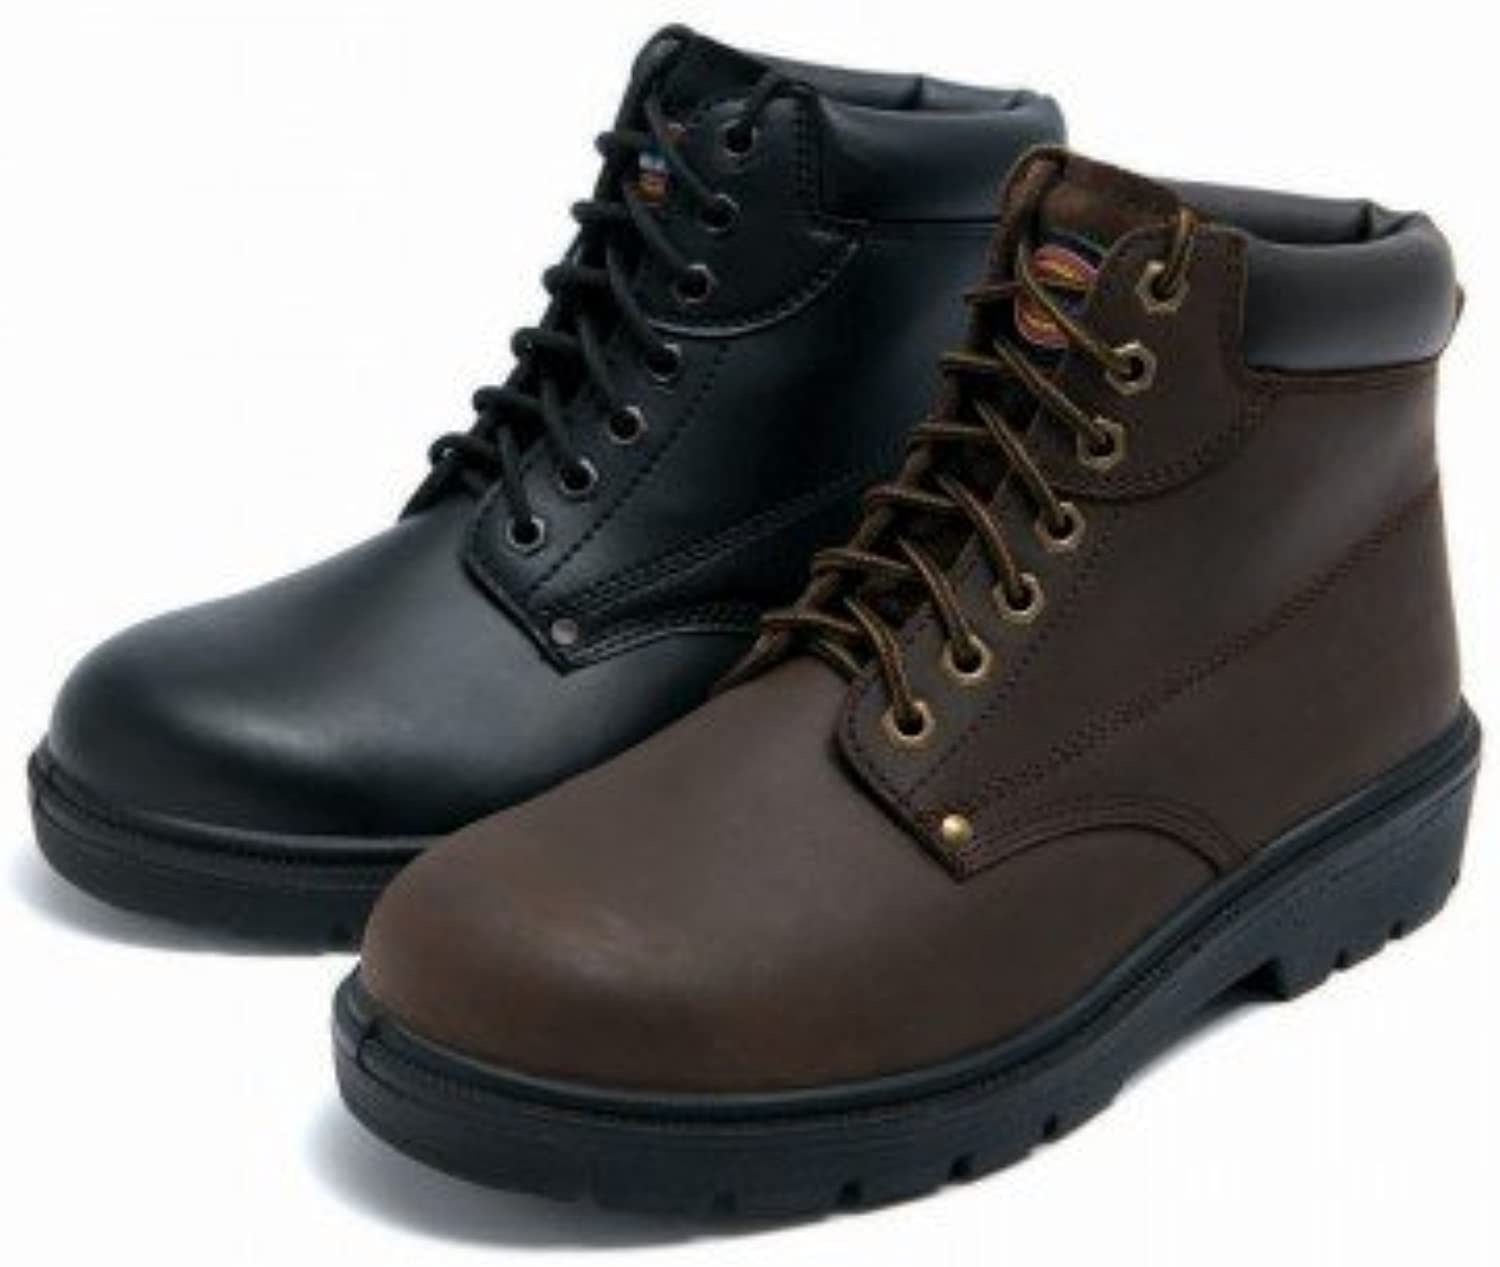 Janitorial Express fa23333-br-9 Dickies Antrim botas de seguridad Super, tamaño 9, color marrón